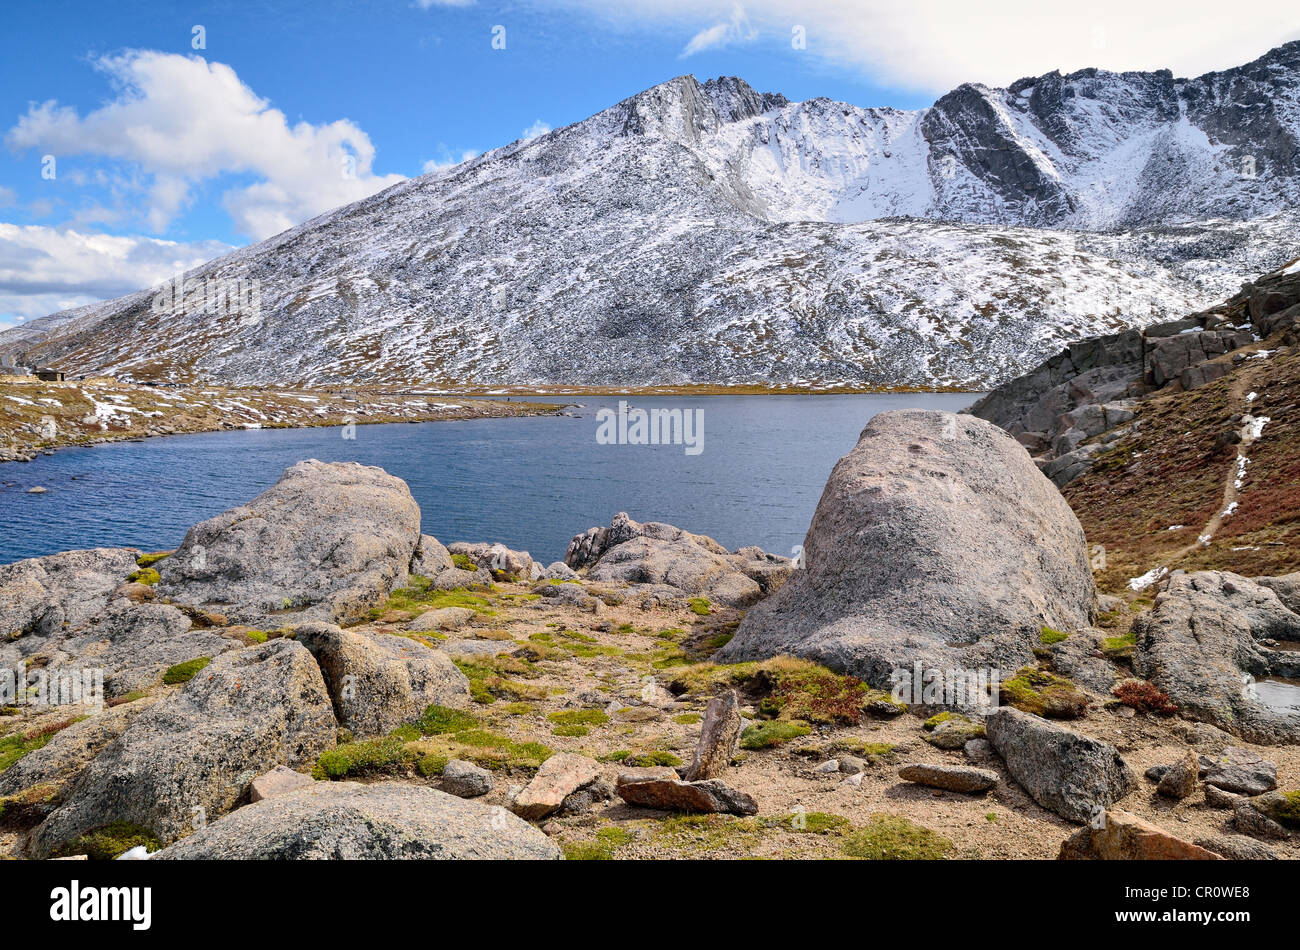 Summit Lake with Mount Evans, Mount Evans Wilderness Arapaho National Forest, Idaho Springs, Colorado, USA - Stock Image